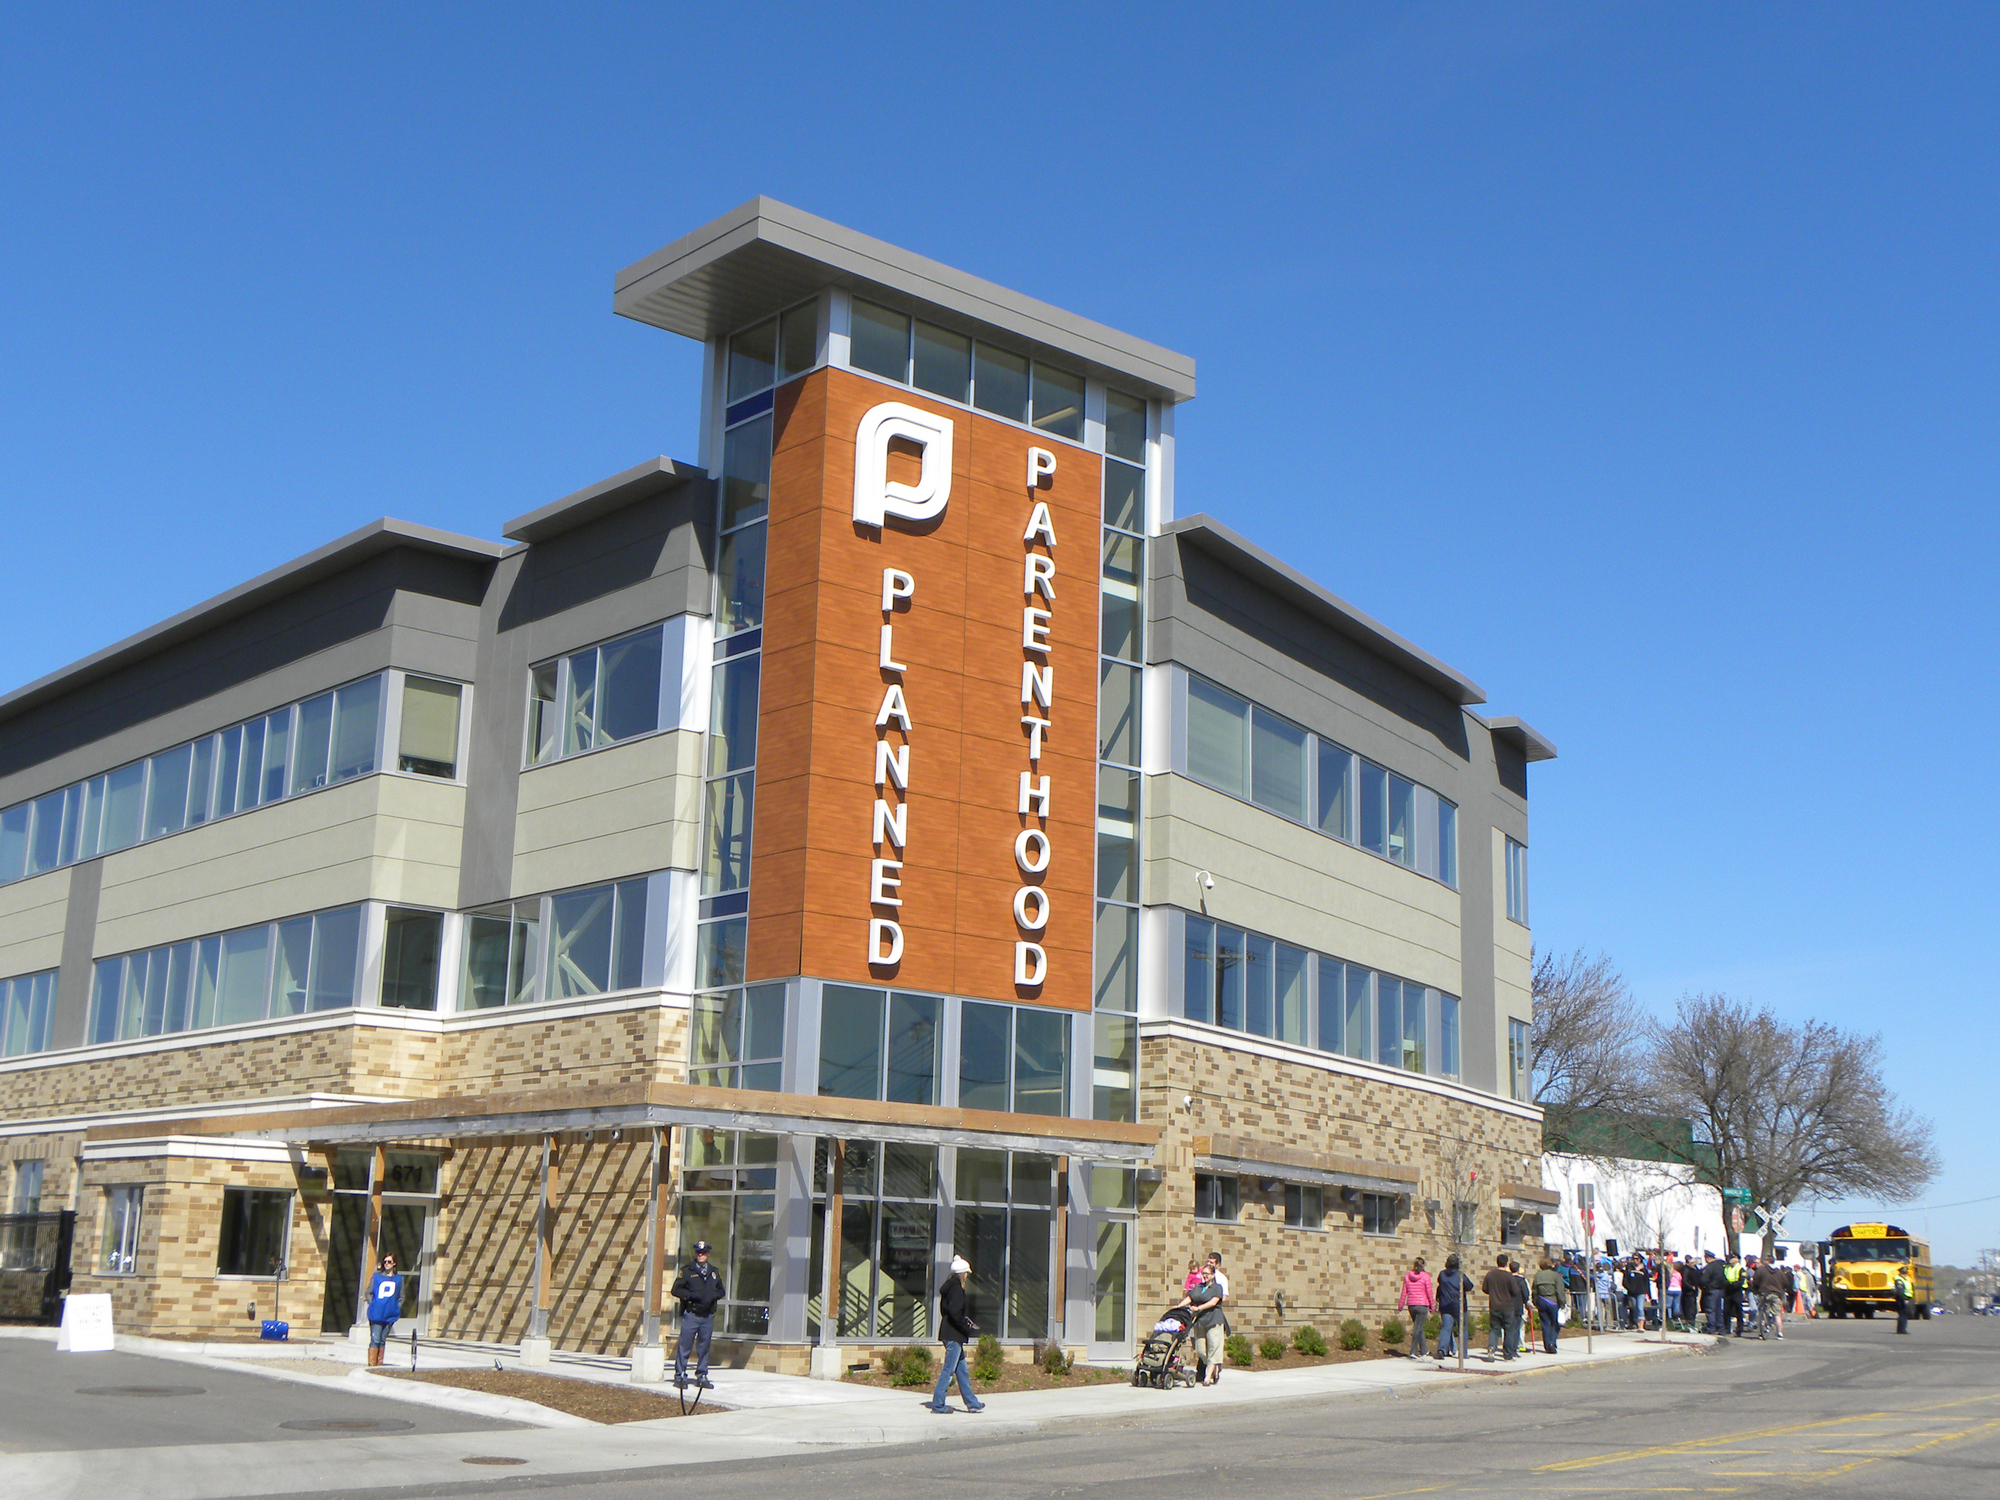 St. Paul family planning clinic Planned Parenthood